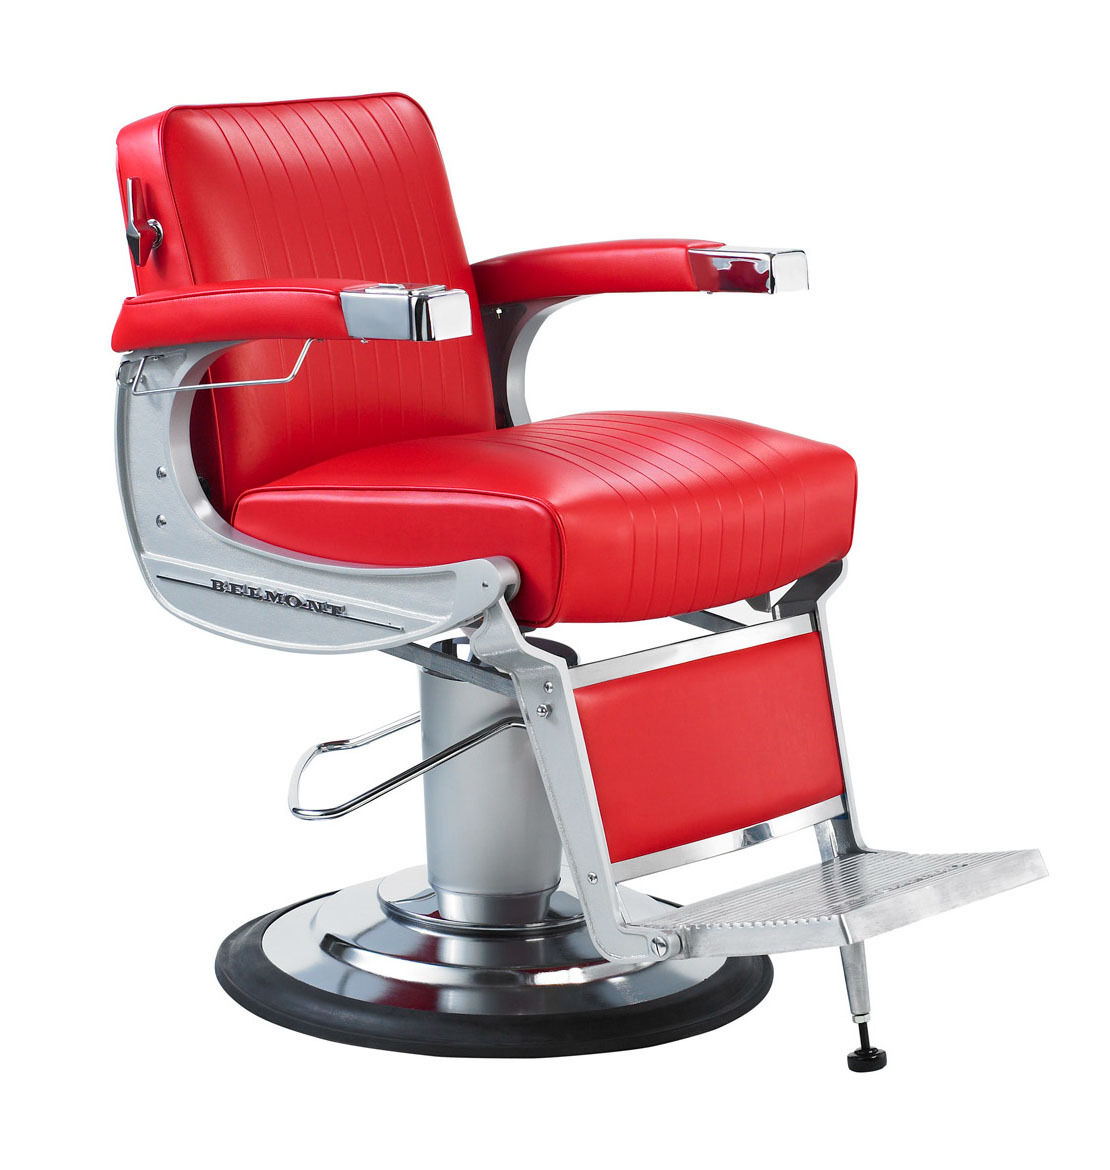 Belmont Barber Chairs For Sale ... - Antique Barber Chair Belmont Barber Chair Salon Chair Barber Salon